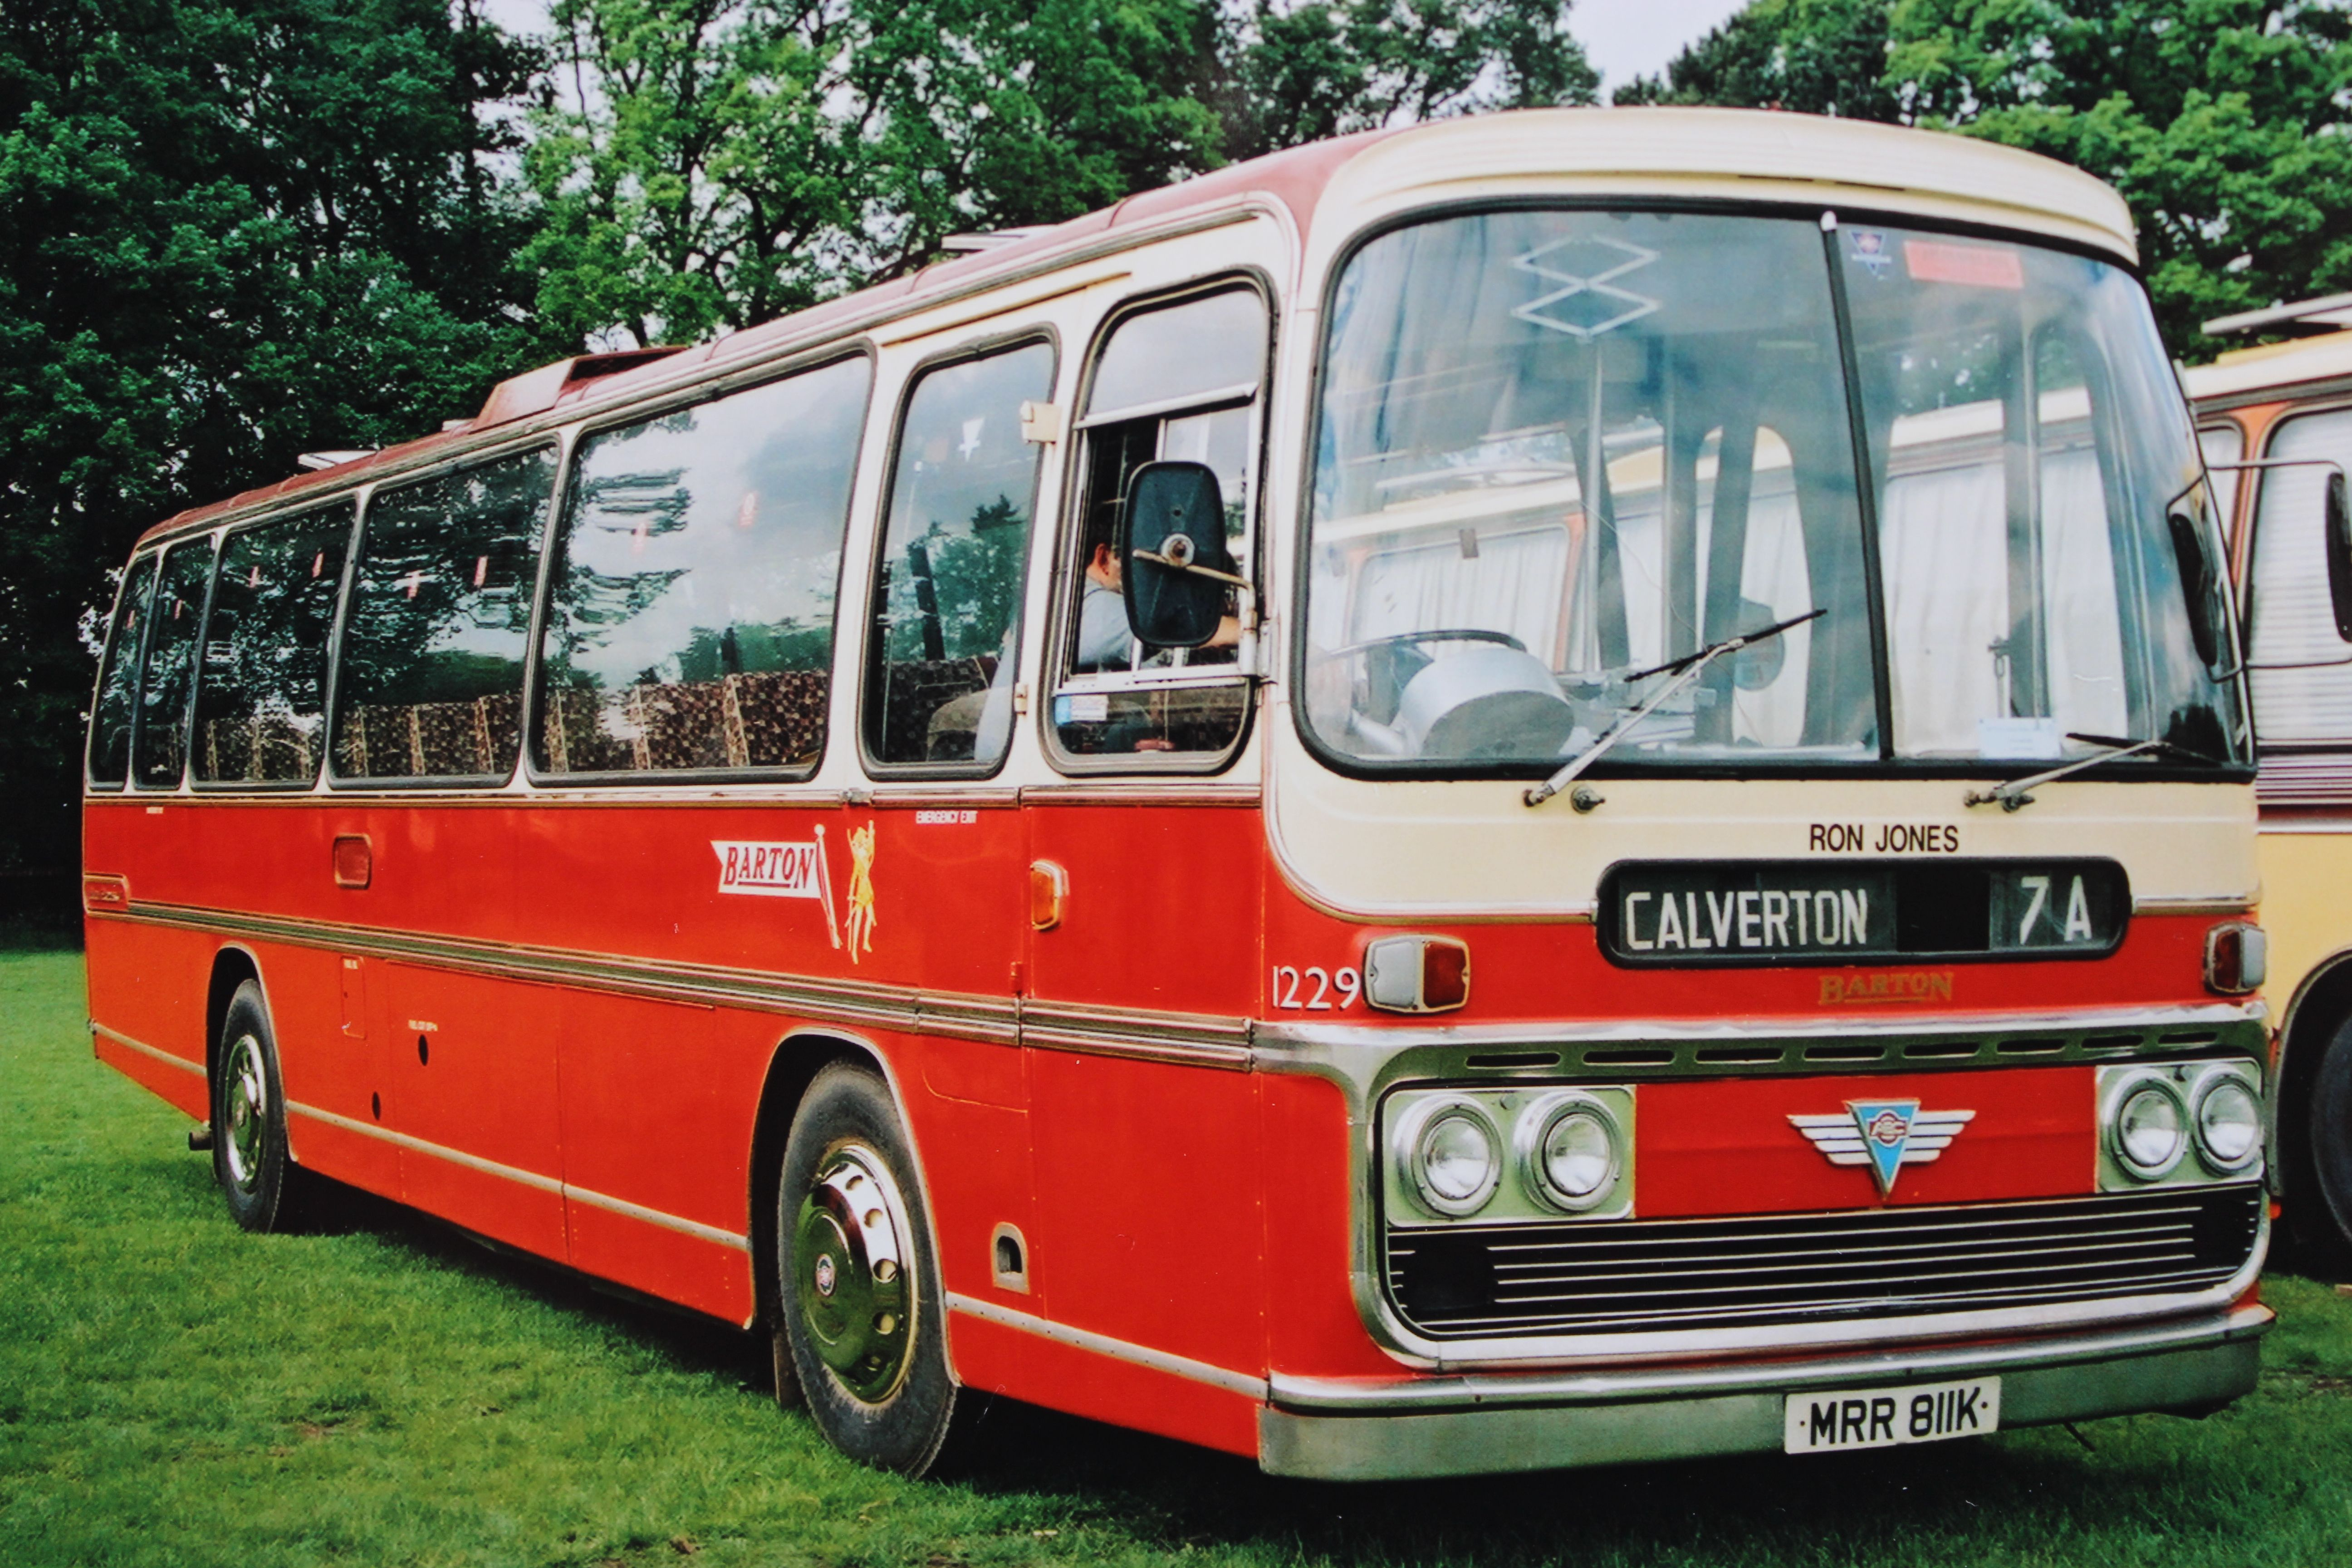 Plaxton Elites The High Capacity Bus Seating Can Quite Clearly Be Seen In This Photograph Of Elite Bodied Aec Reliance Bus Coach Bus Commercial Vehicle